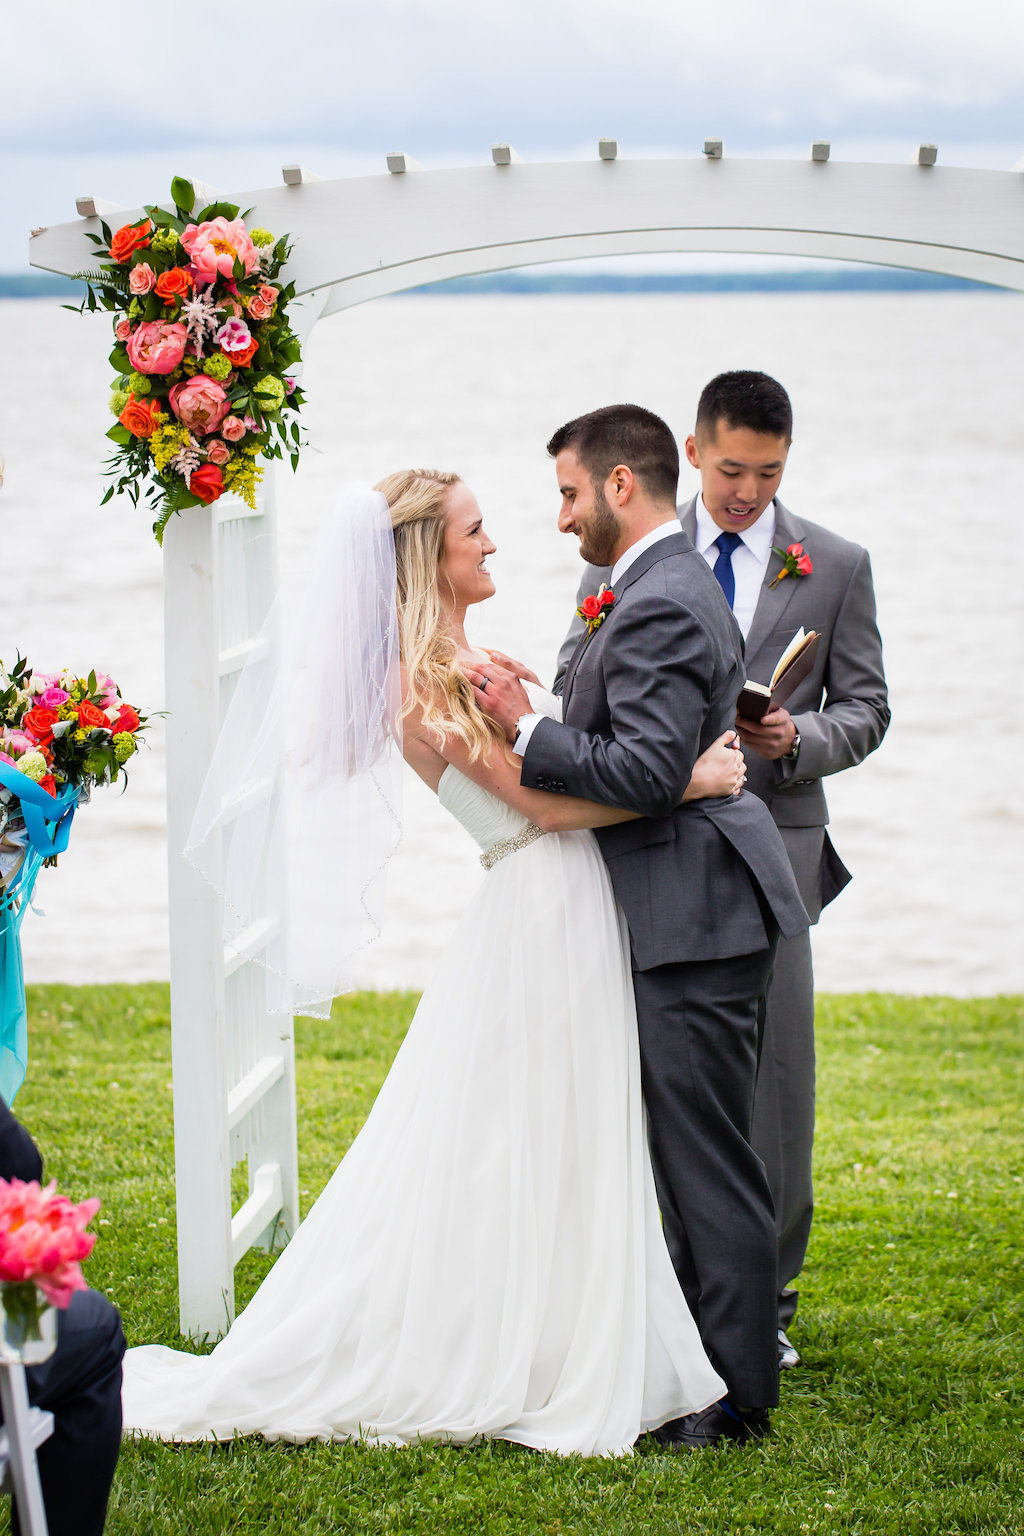 brielle-davis-events-weatherly-farm-waterfront-wedding-ceremony-after-kiss.jpg